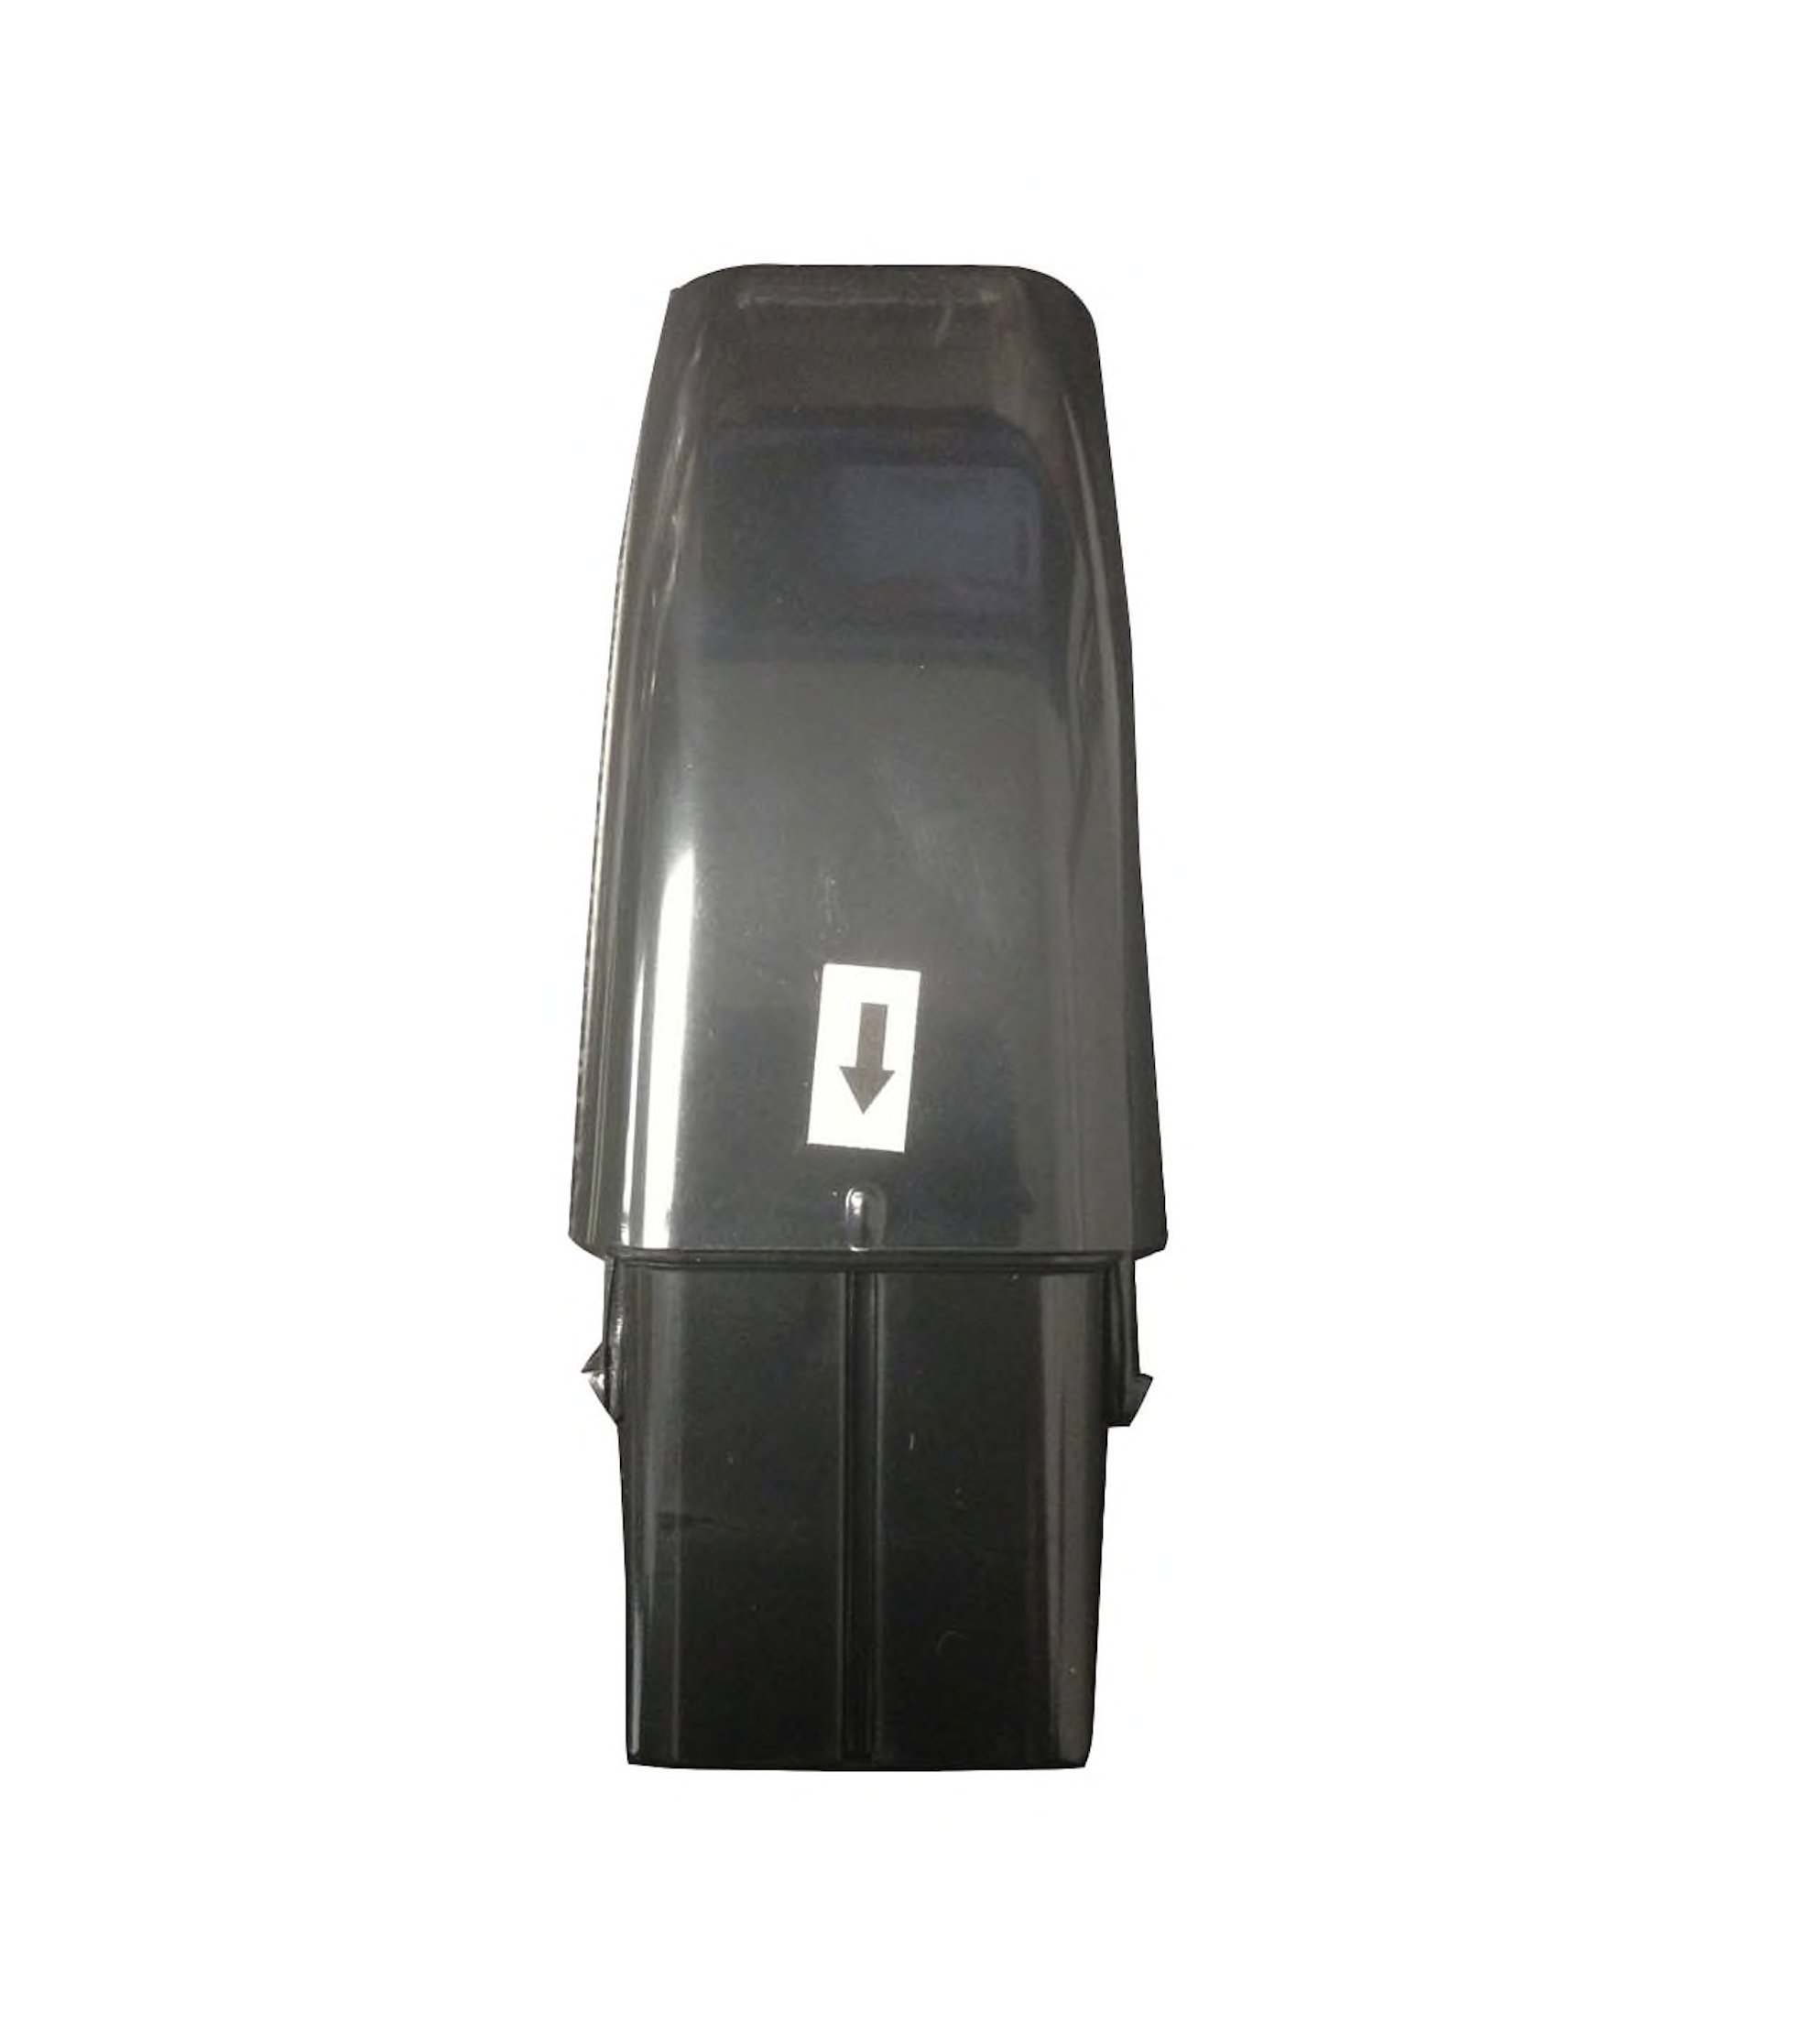 Ontel Rechargeable Battery for Cordless Swivel Sweeper Max Models